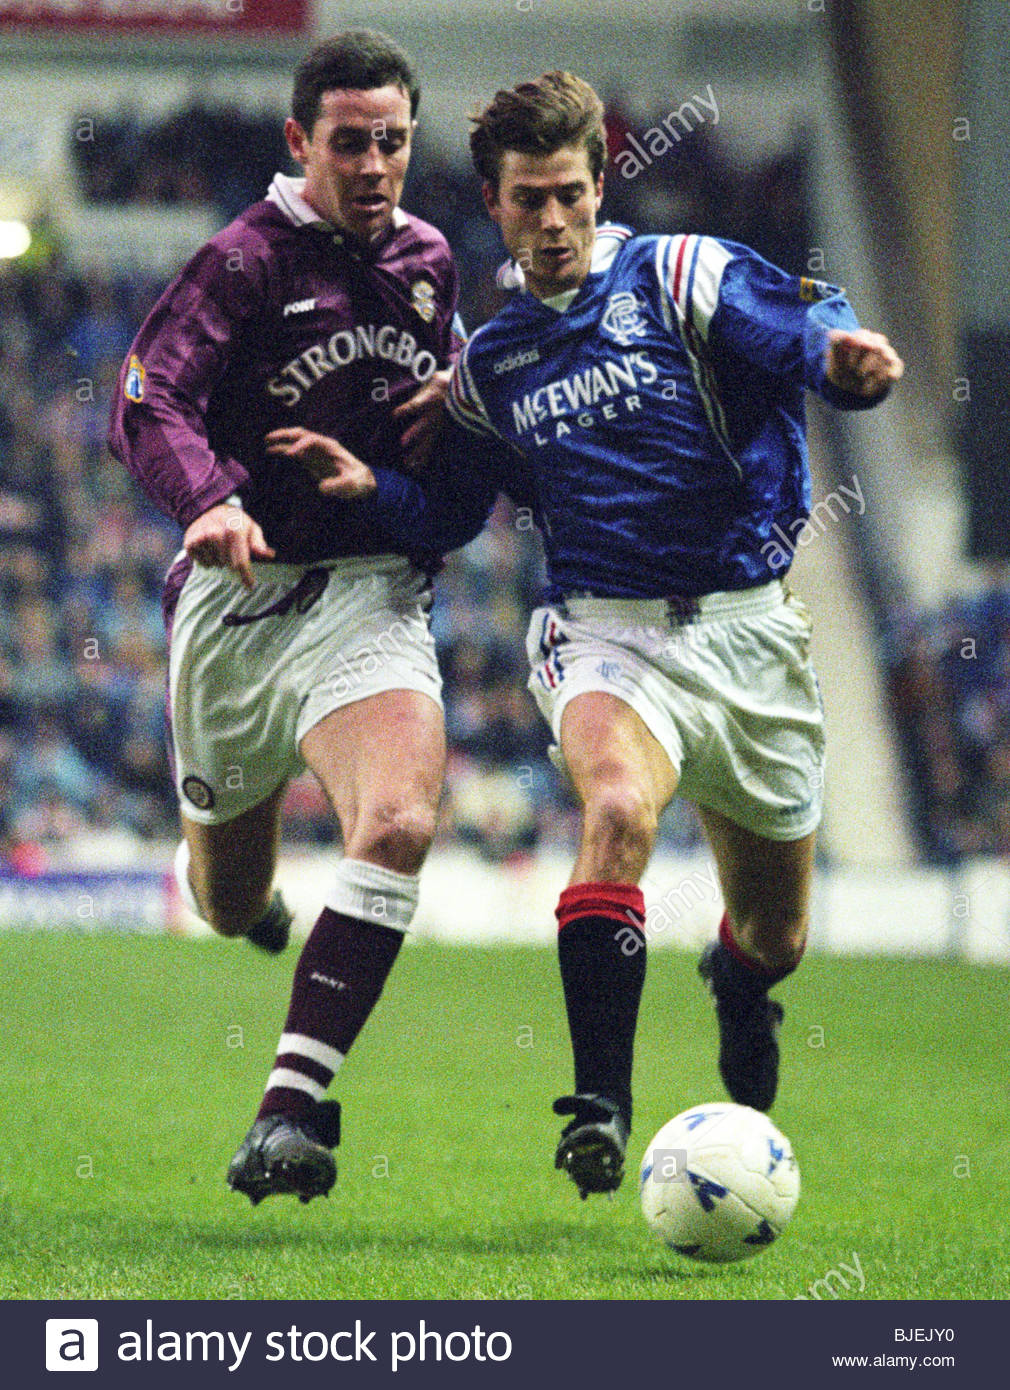 01/02/97 BELL'S PREMIER DIVISION RANGERS V HEARTS (0-0) IBROX - GLASGOW Brian Laudrup (right) holds off the - Stock Image